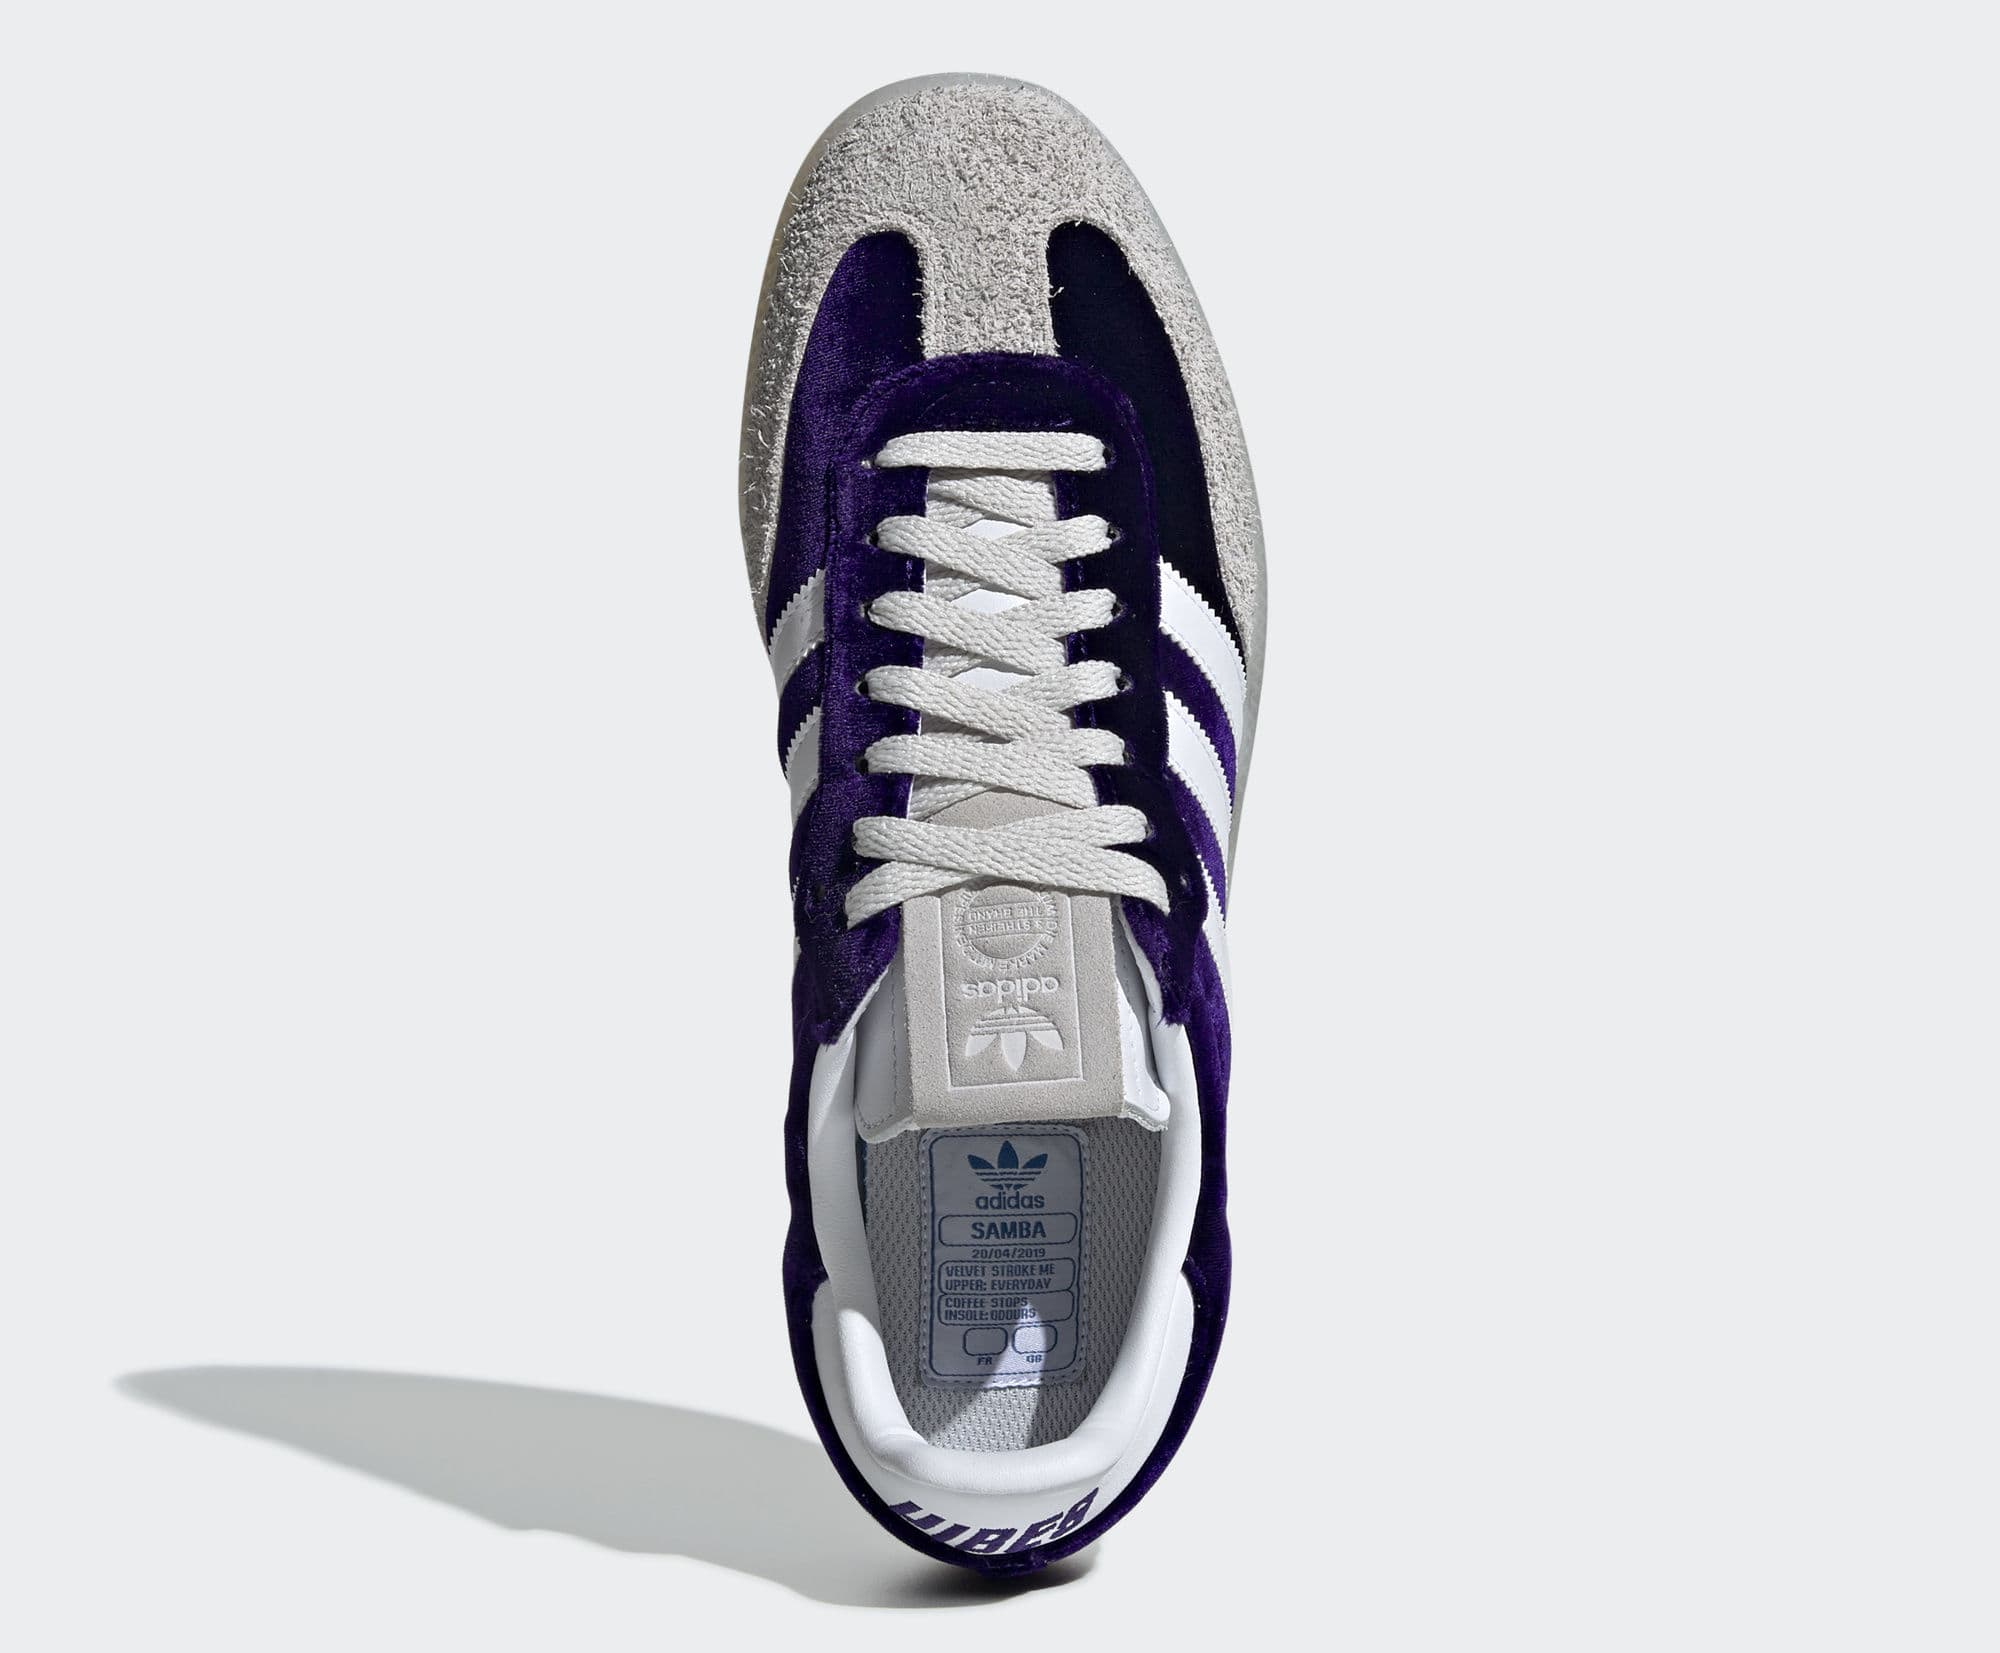 Adidas Samba 'Purple Haze' DB3011 (Top)